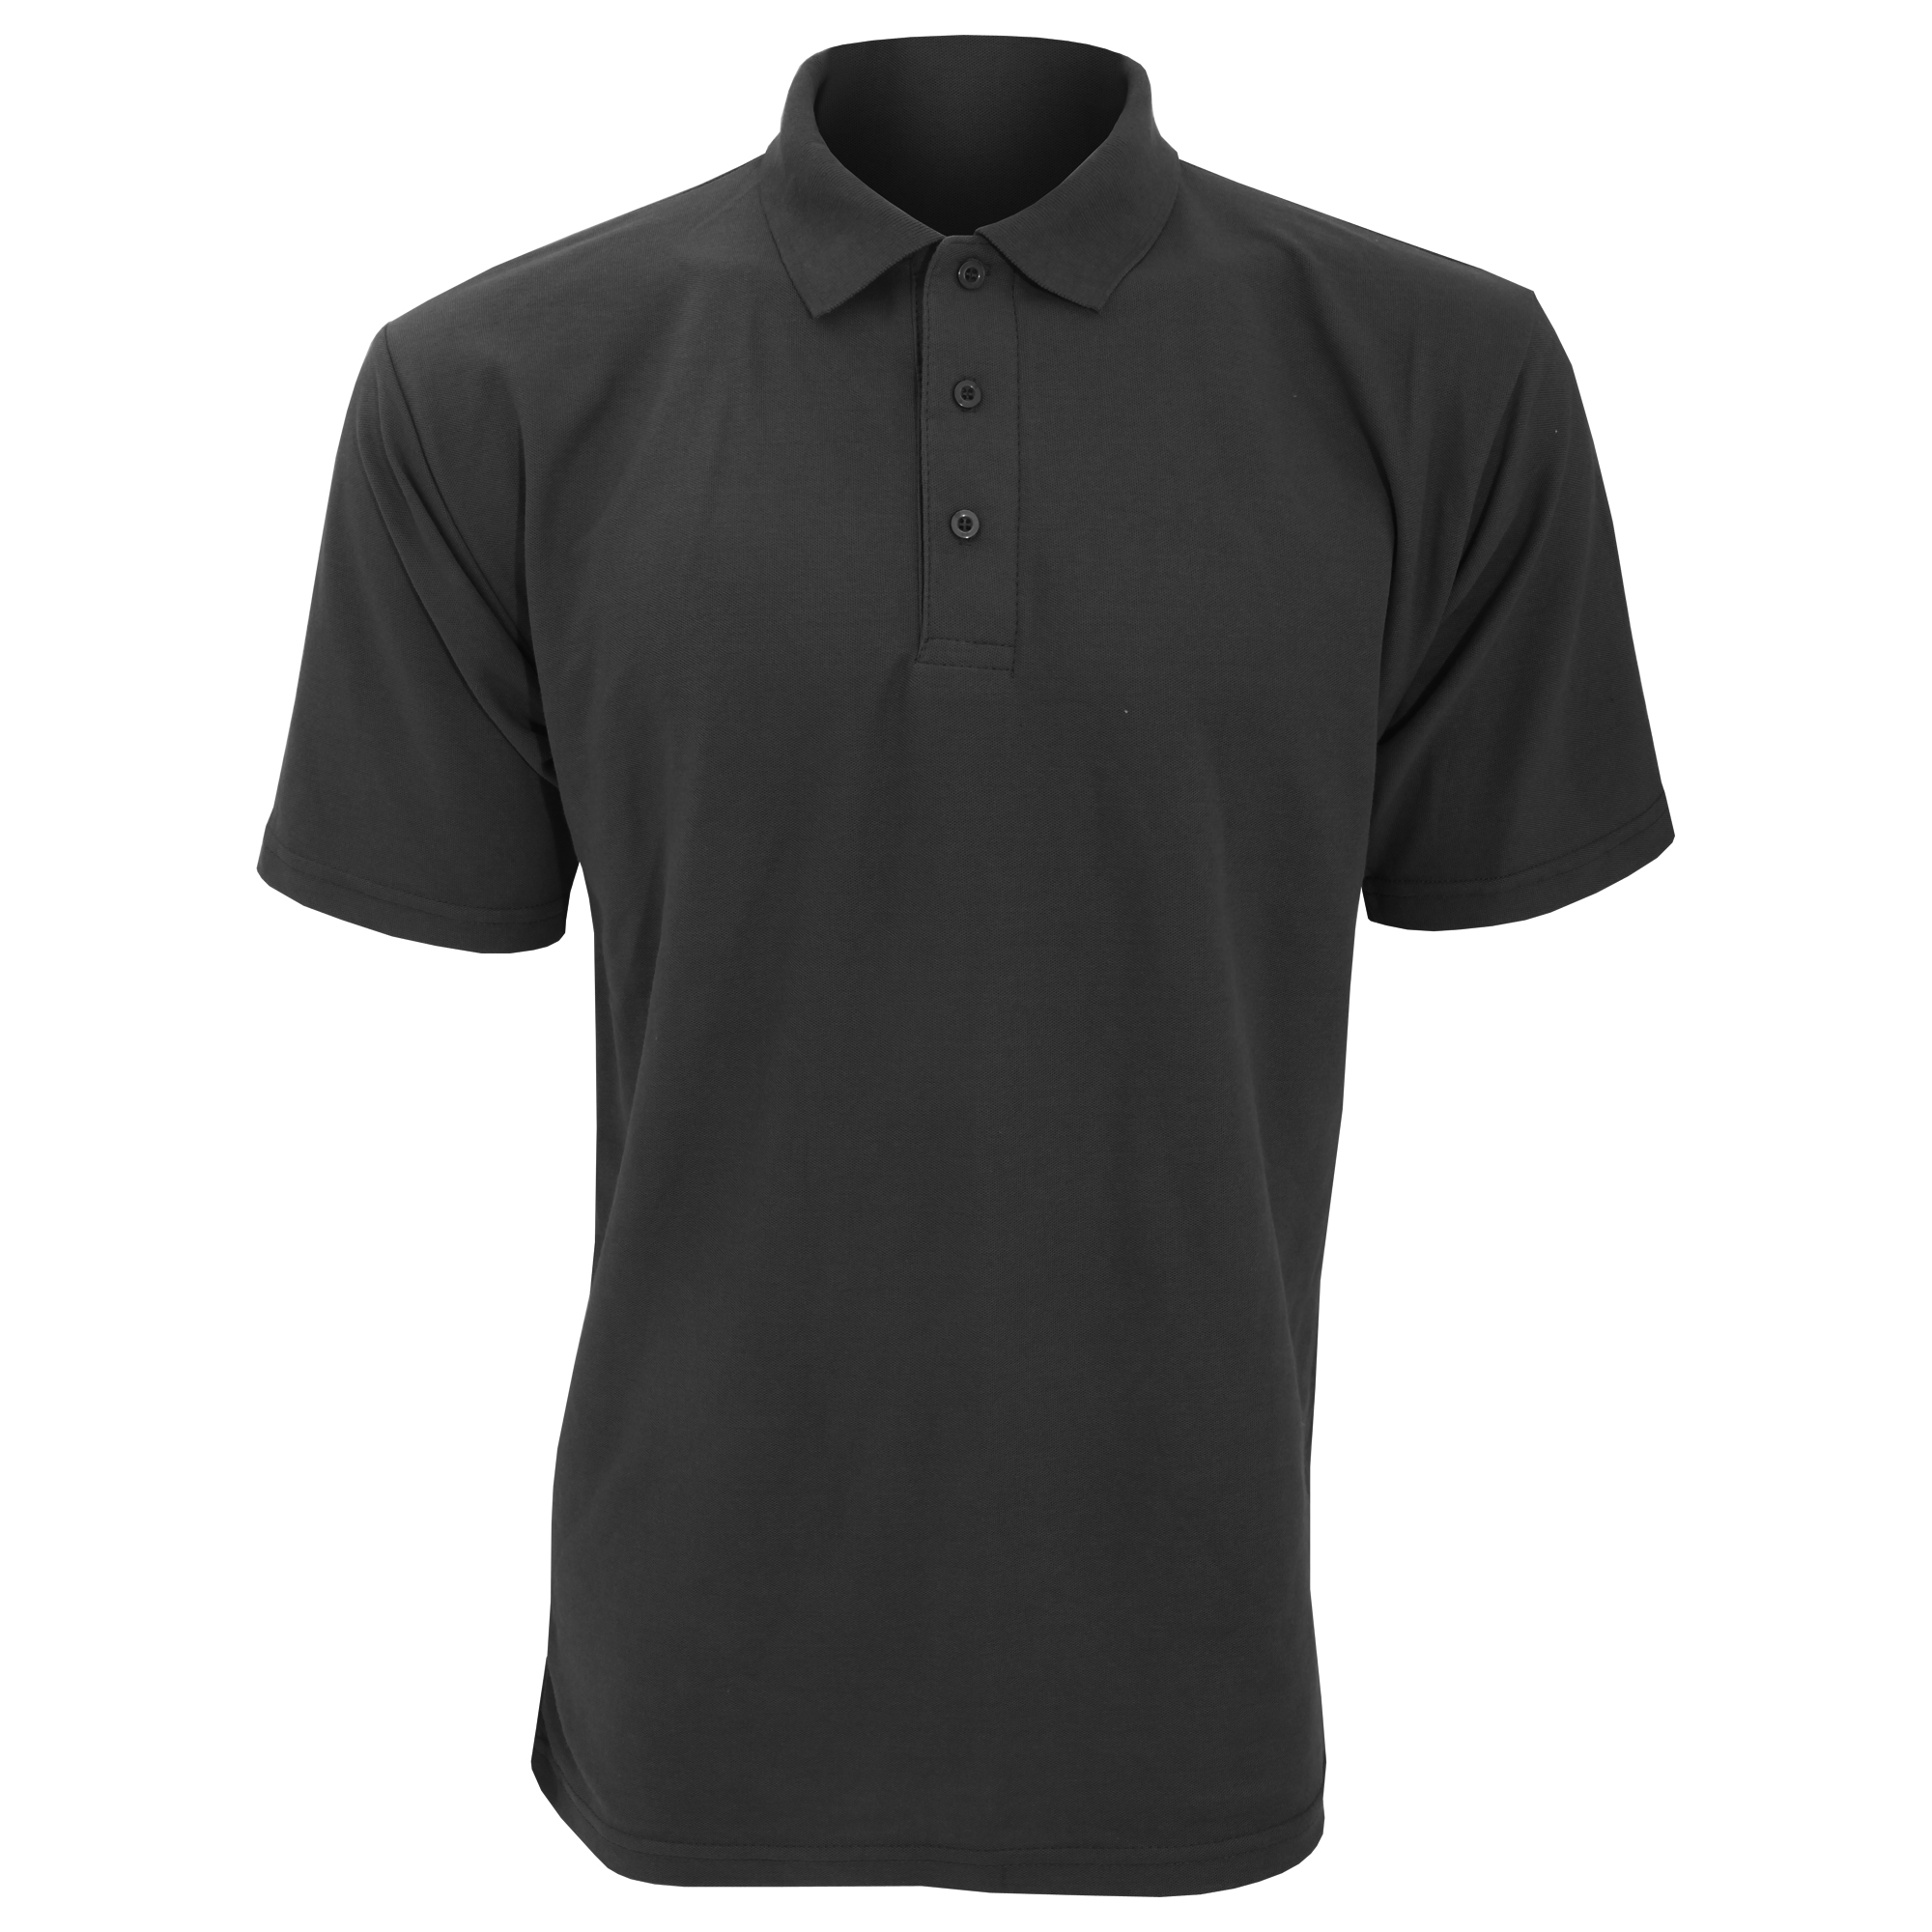 Ucc 50 50 mens plain piqu casual short sleeve polo shirt for Mens xs golf shirts